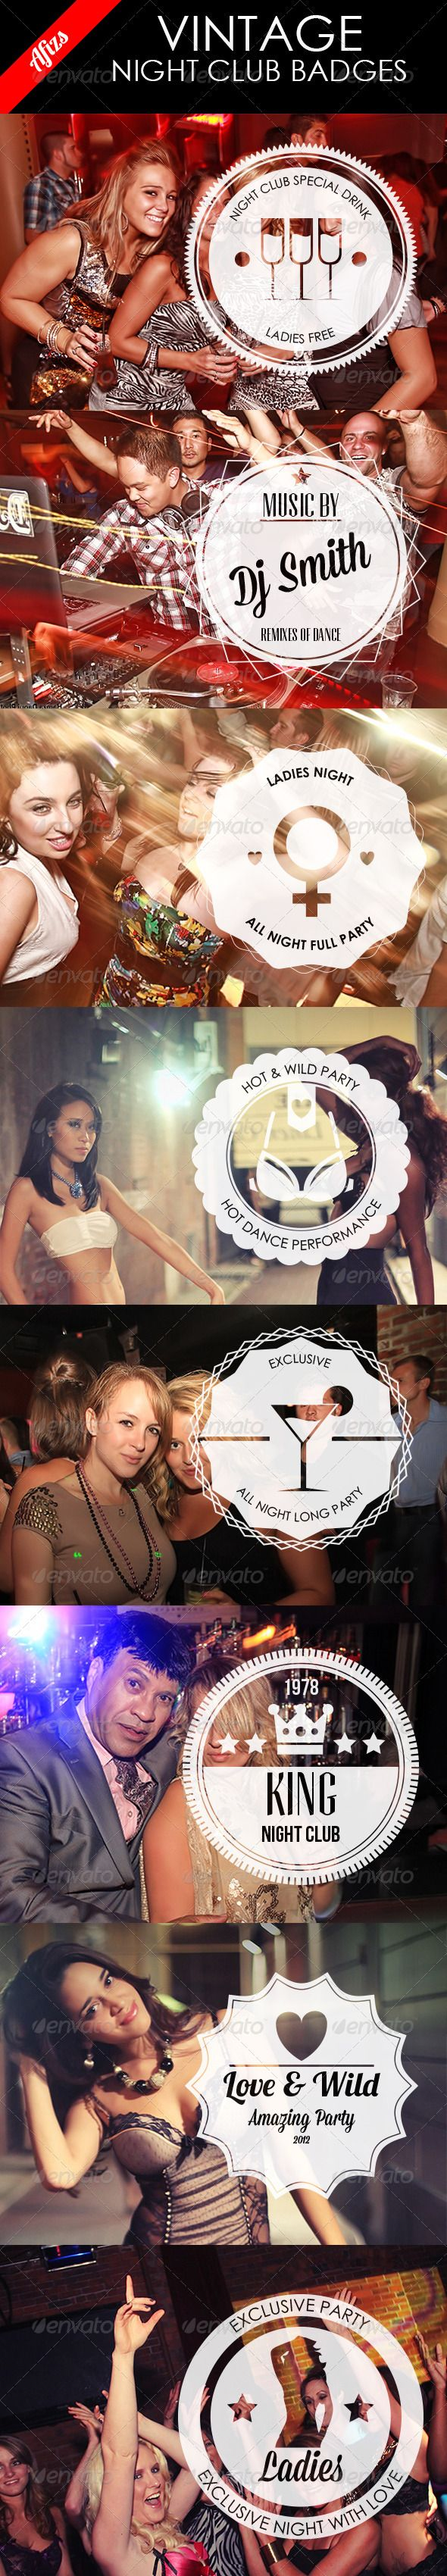 Night Club Vintage Badges  #GraphicRiver         in this file you will get 2 .ai and 2 .eps (eps with editable text and